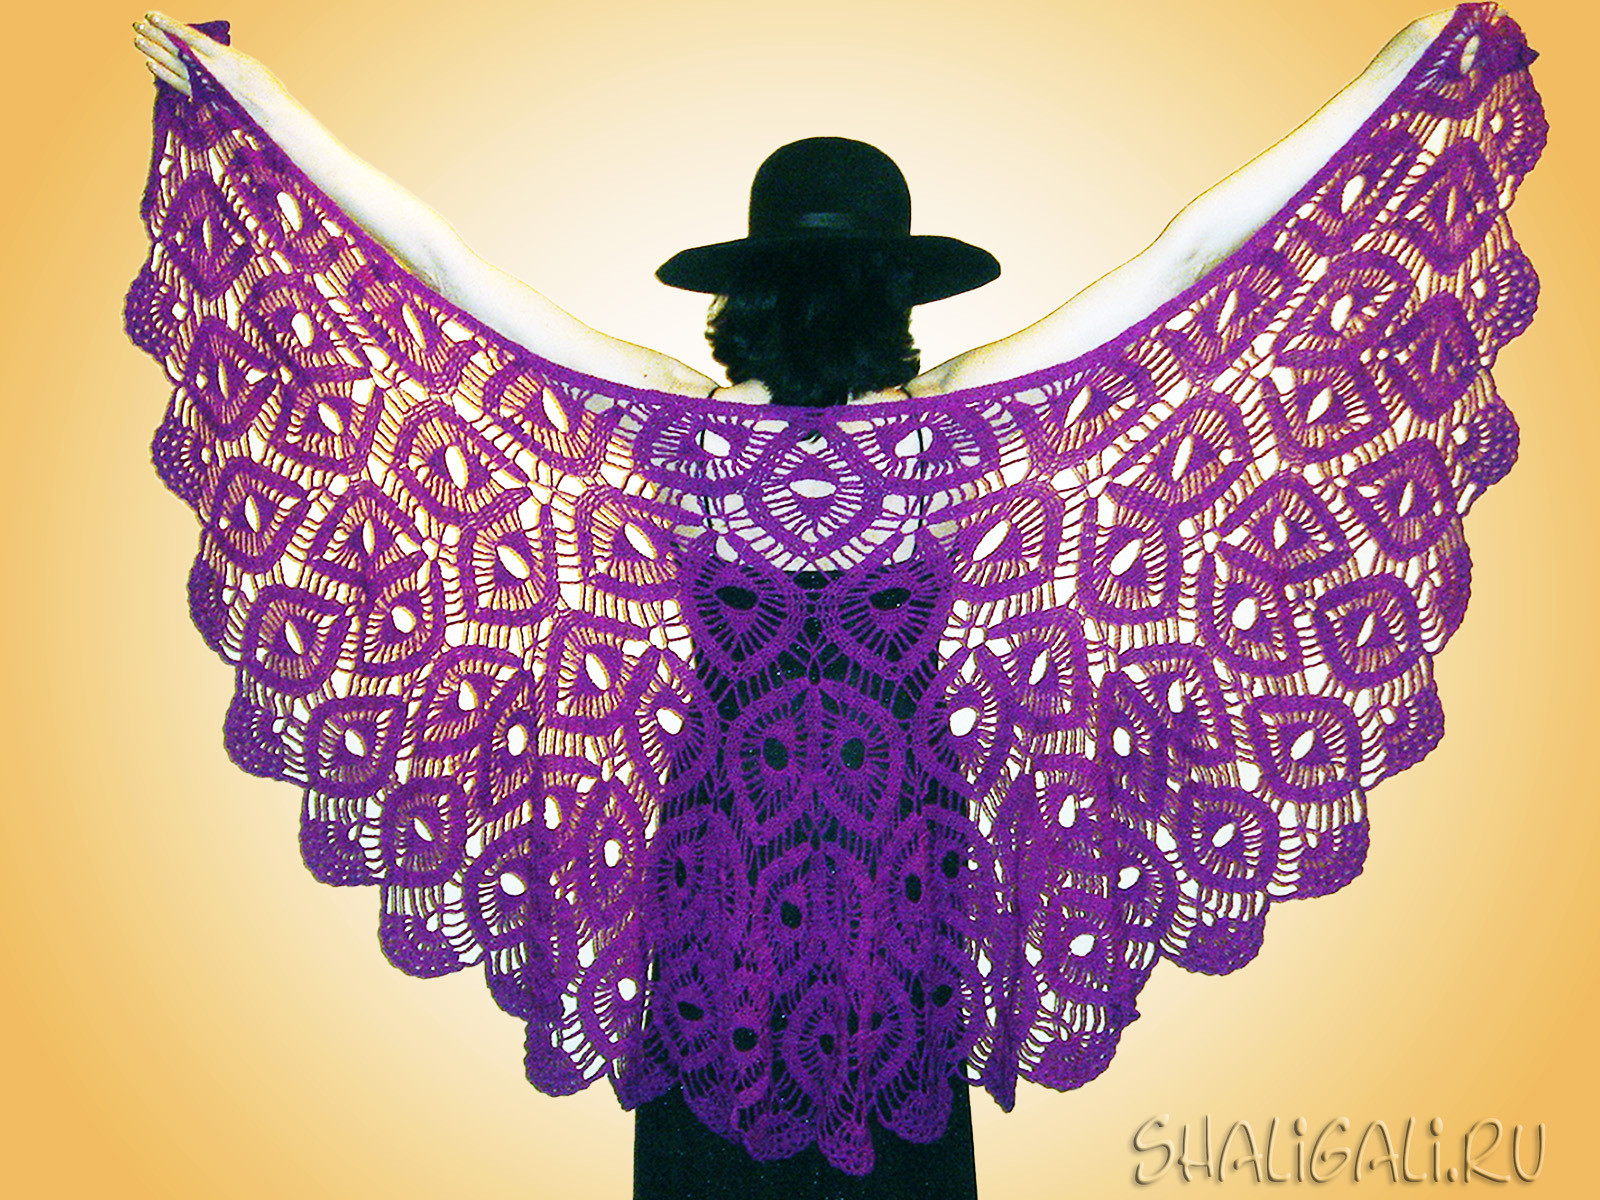 Best Of Free Crochet Patterns to Quick and Easy Crochet Shawl Patterns Of Beautiful 50 Pics Quick and Easy Crochet Shawl Patterns